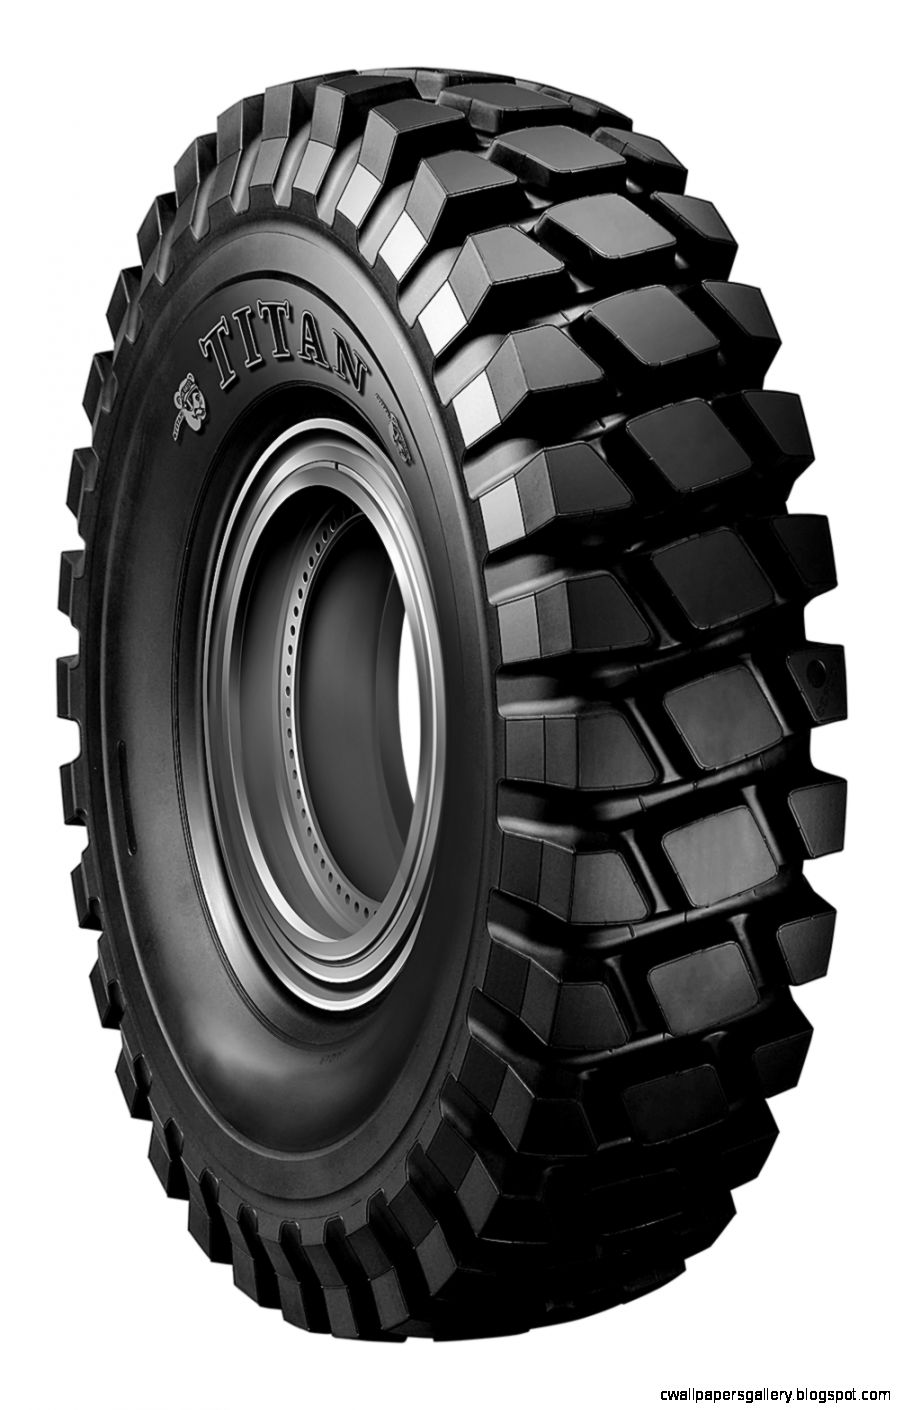 Titan Tire39s DTE4 haul truck tire  Aggregates Manager